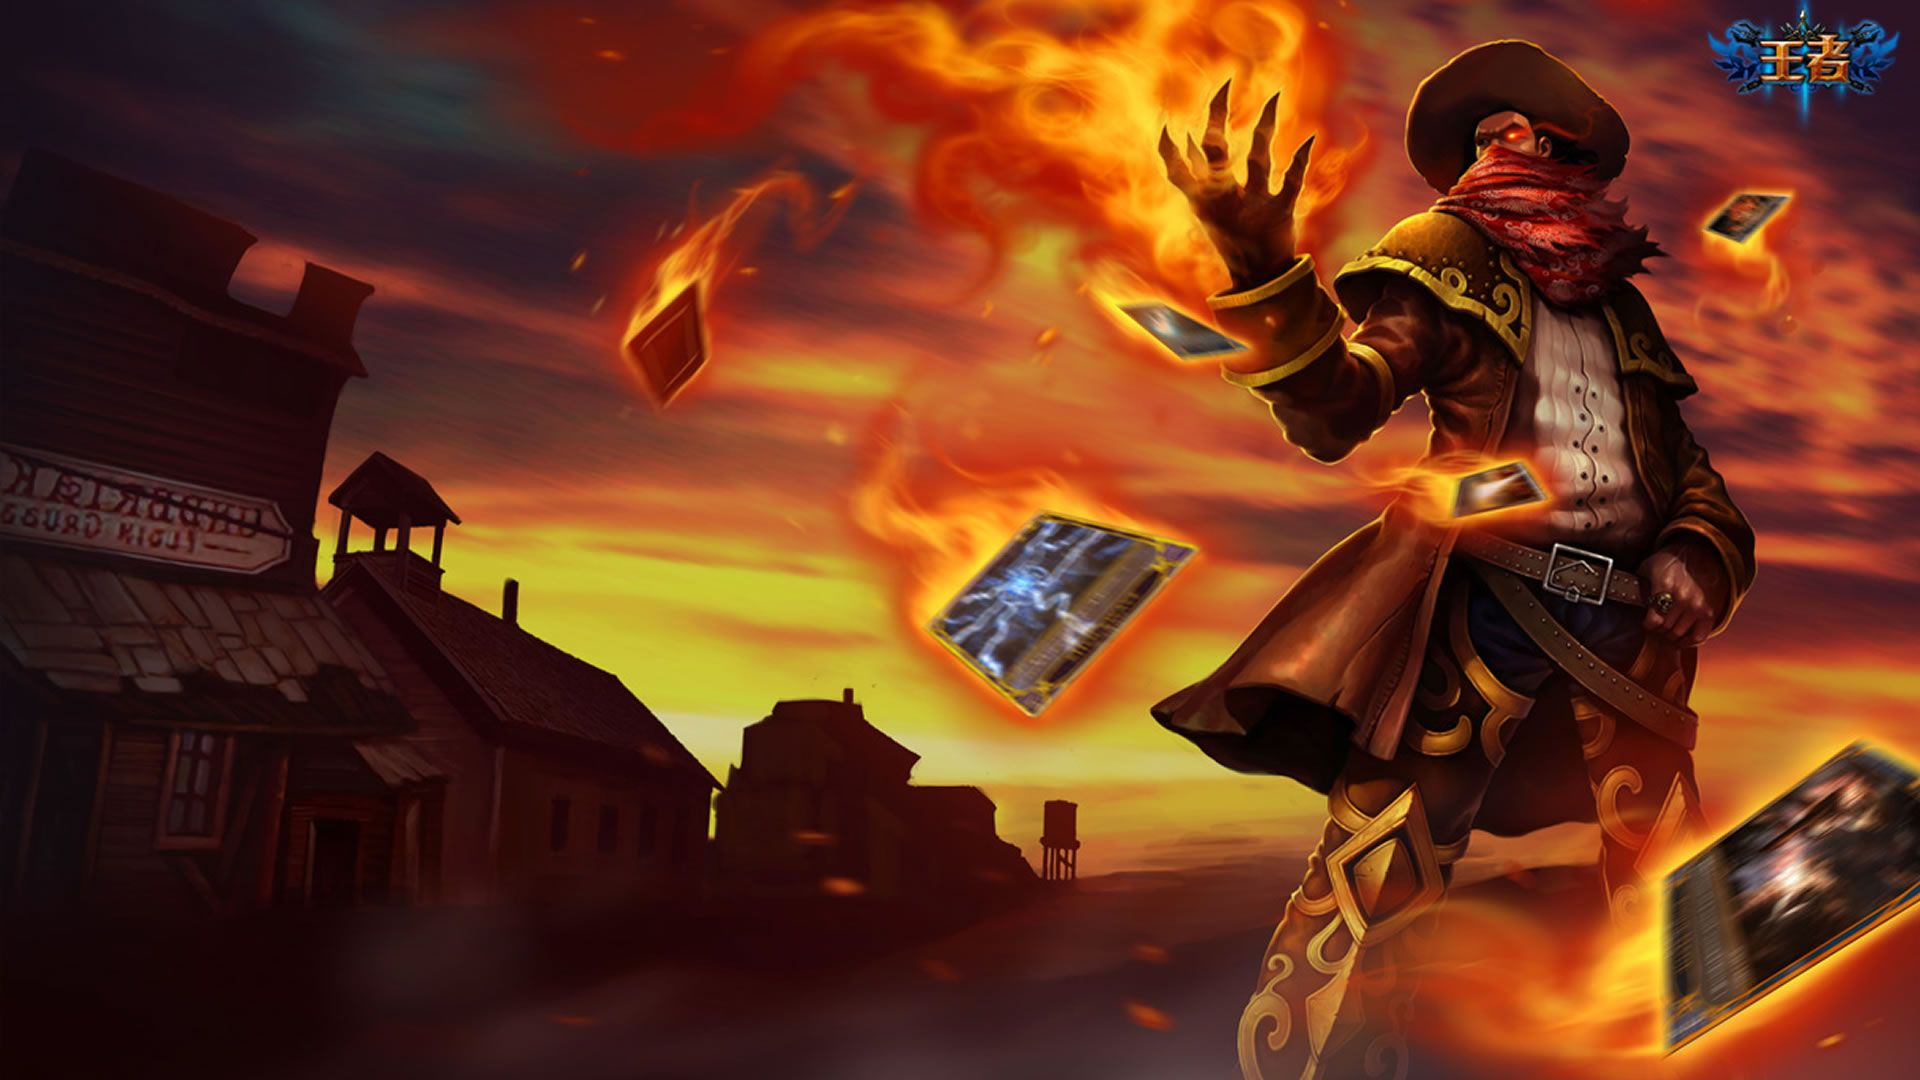 High noon twisted fate chinese wallpaper leaguesplash mis gustos high noon twisted fate chinese wallpaper leaguesplash voltagebd Images